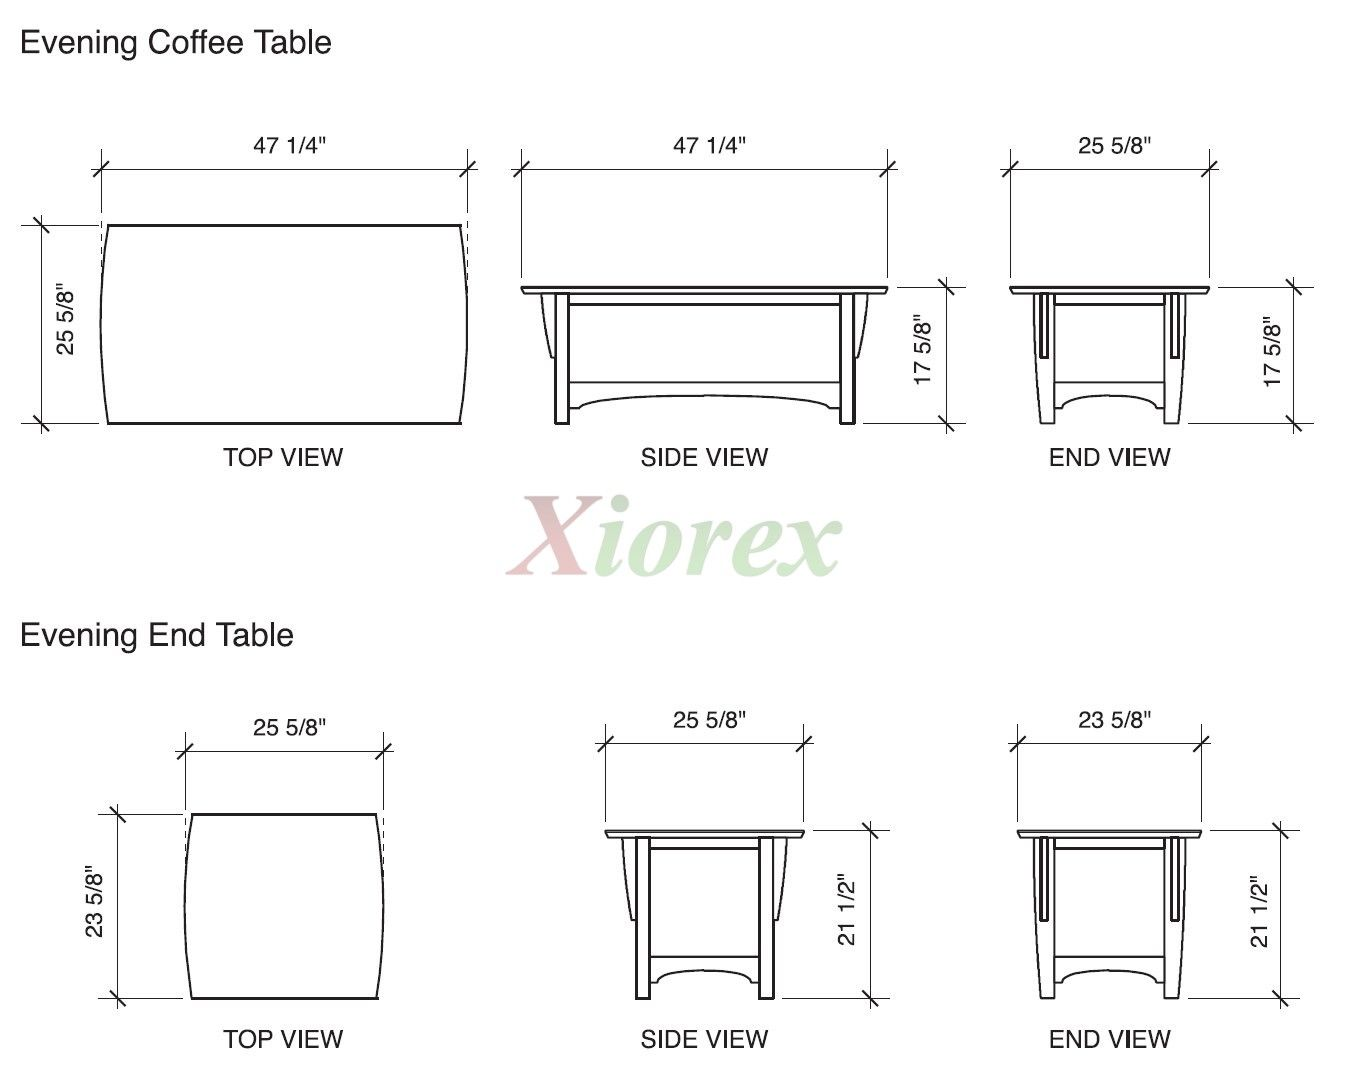 Coffee Table Dimensions 16932 Coffee Table Dimensions Coffee Table And End Table